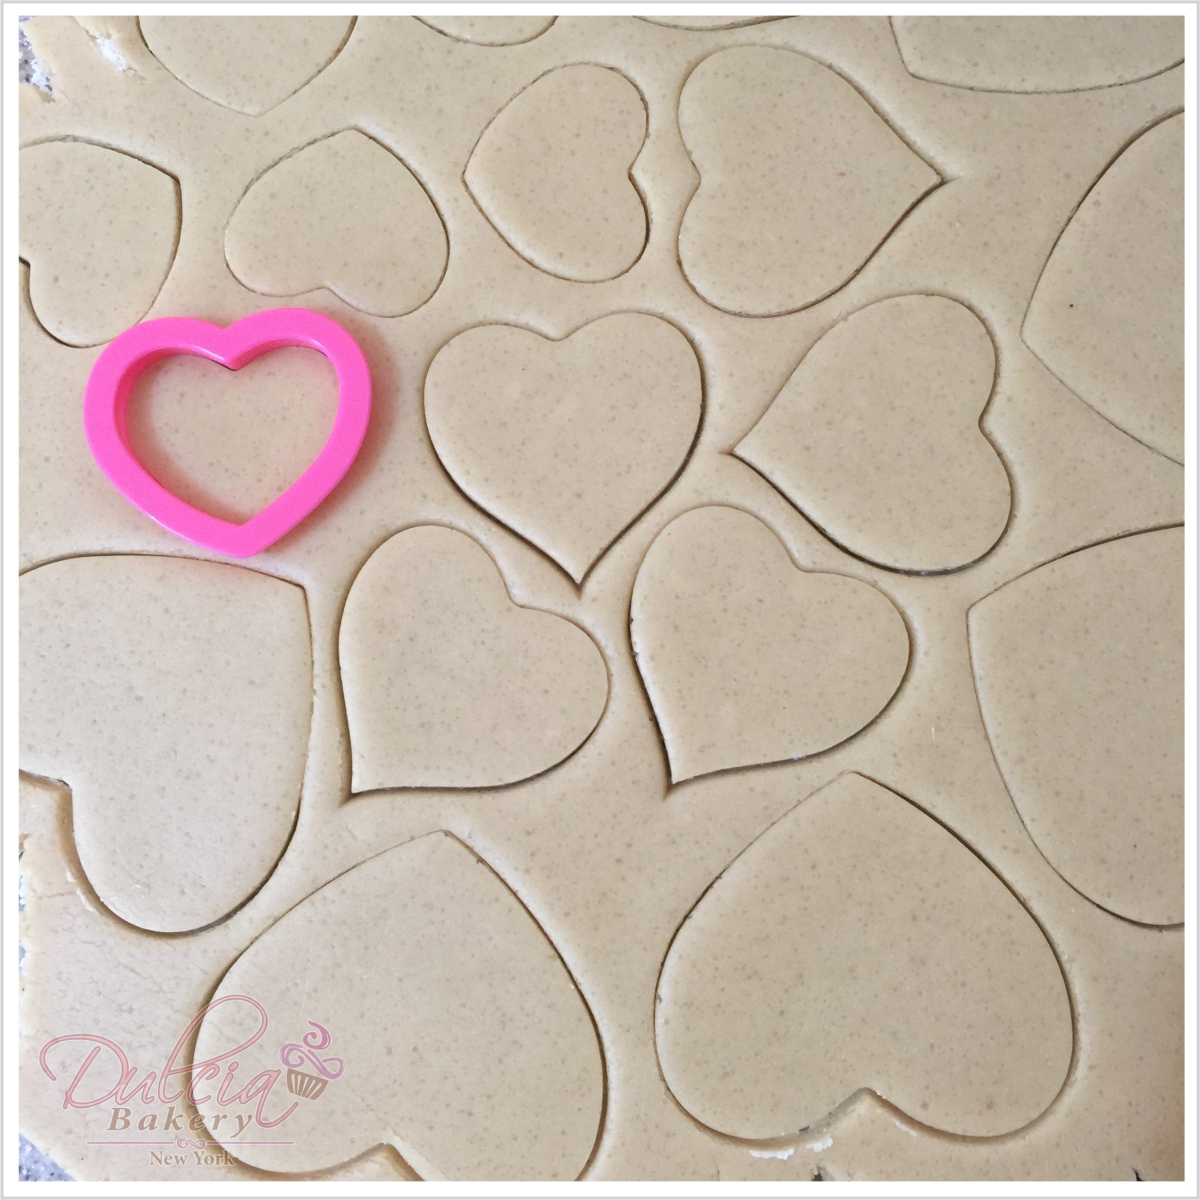 My Sugar Cookie & Royal Icing Recipe PDF